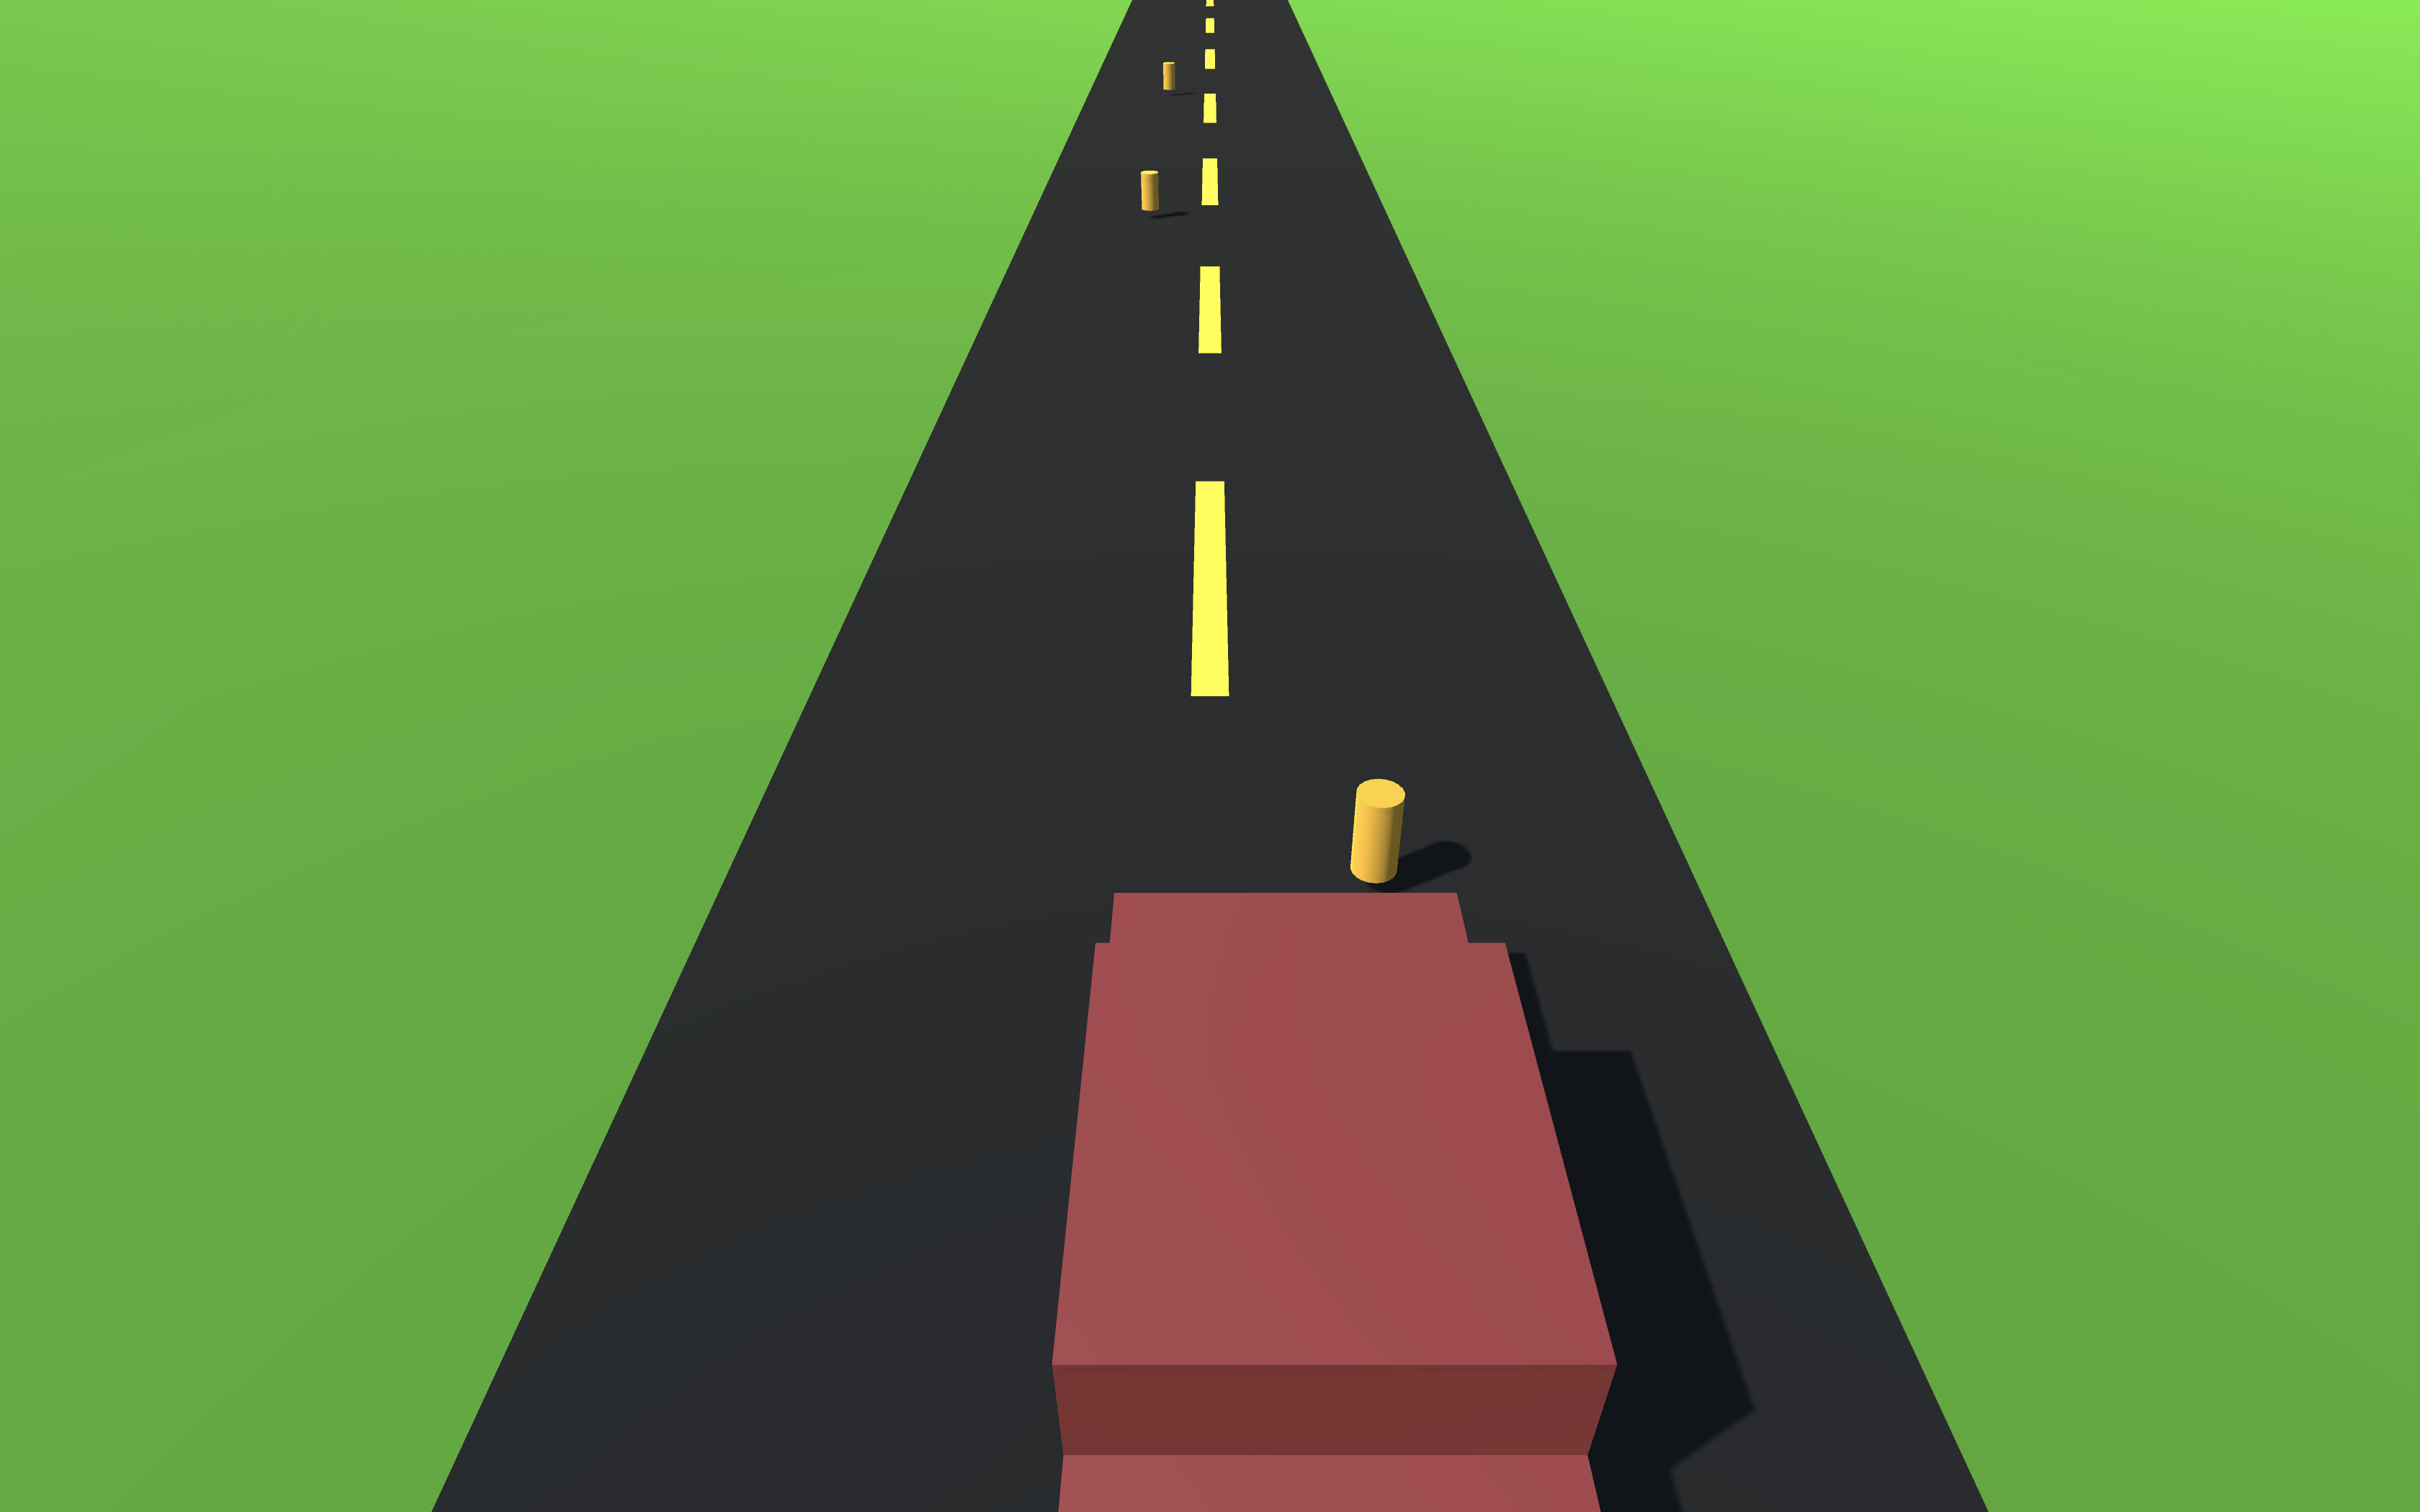 Very basic blocky virtual car drives down straight 2 lane road with occasional cones on each side